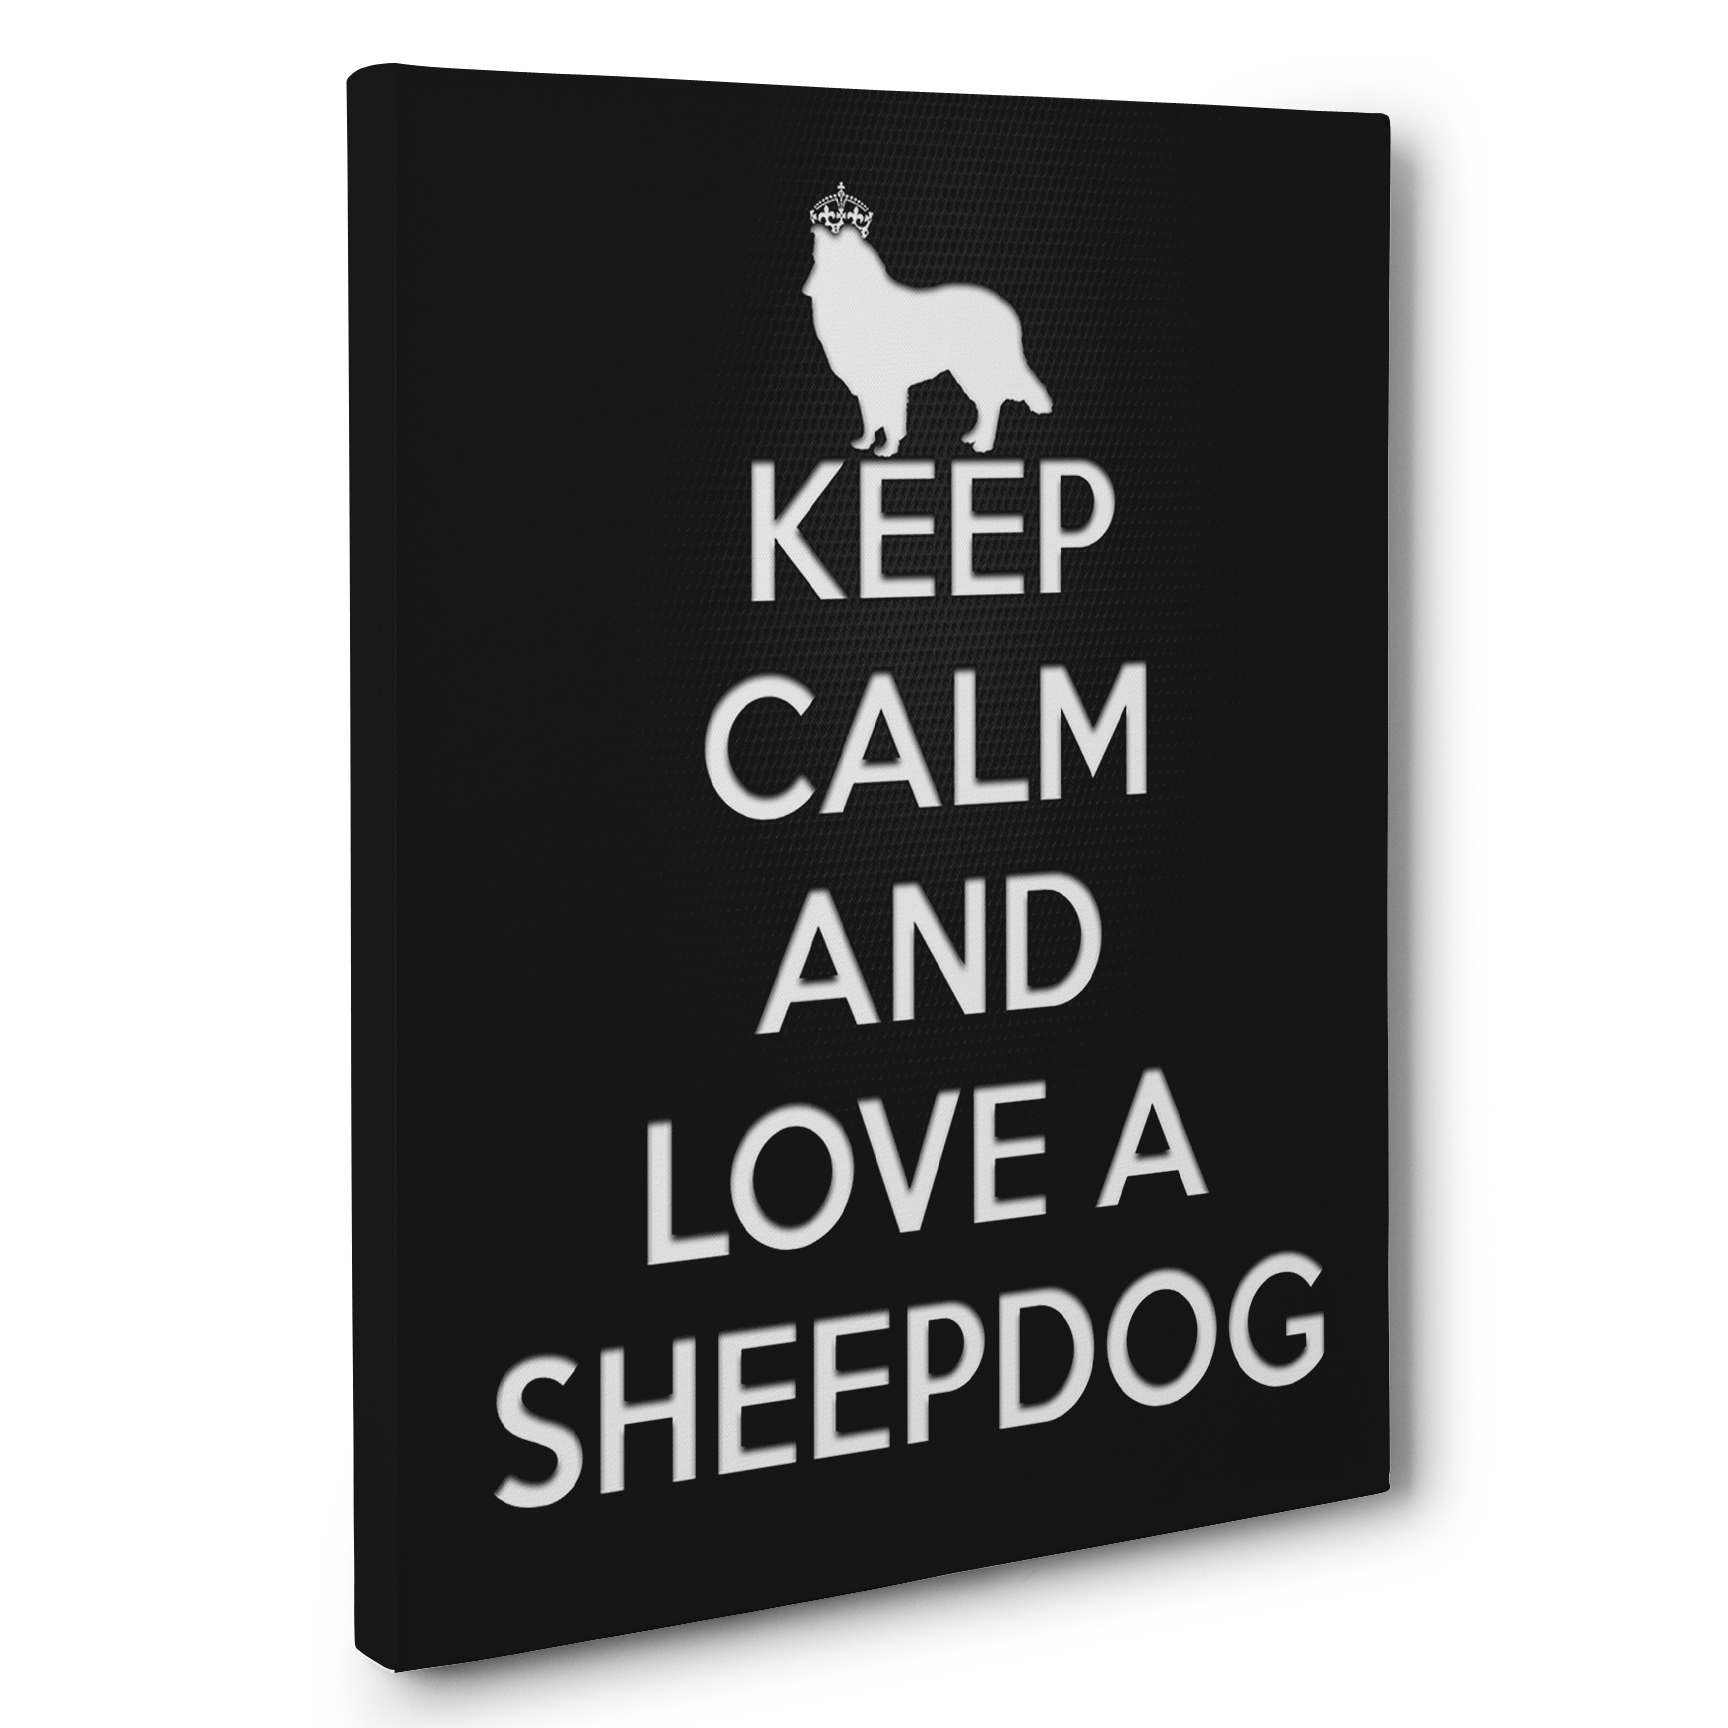 Keep Calm And Love A Sheepdog Canvas Wall Art – Paper Blast Within Newest Keep Calm Canvas Wall Art (Gallery 1 of 15)